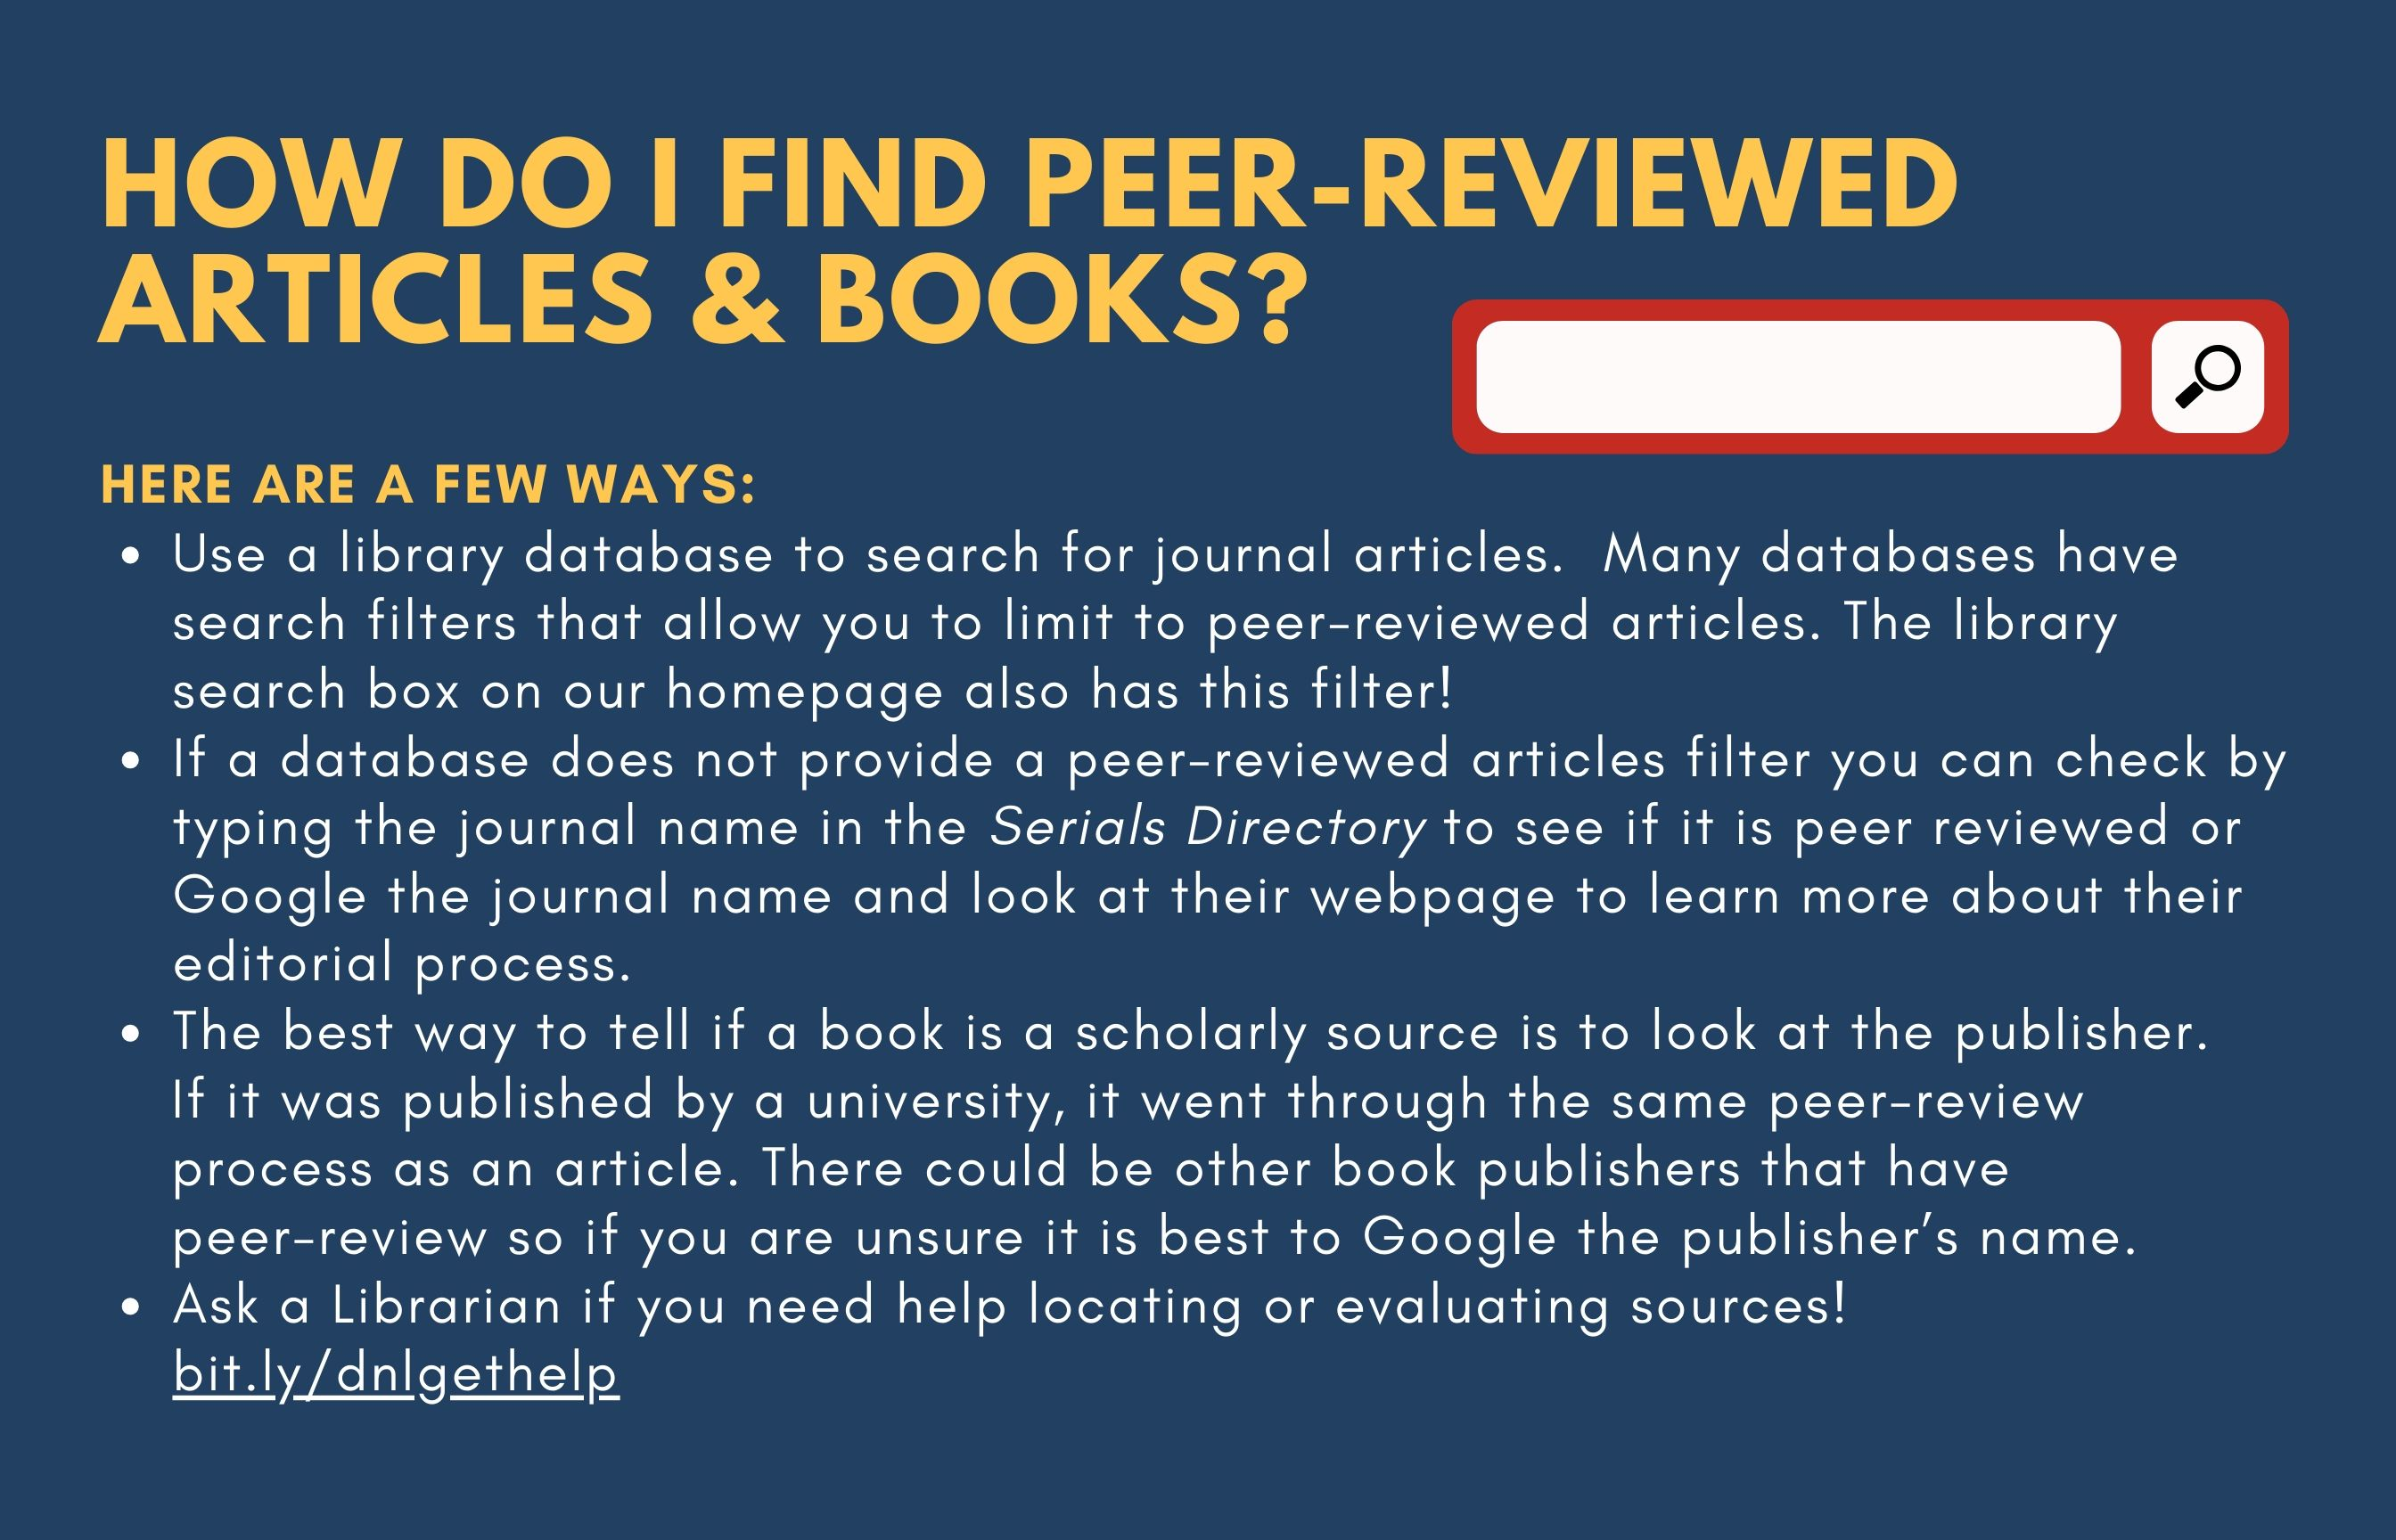 How Do I find Peer-Reviewed Articles & Books? Picture on the right hand side is a red and white search box. Here are a few ways: Use a library database to search for journal articles and books. Many databases have search filters that allow you to limit to peer-reviewed materials. The library search box on our homepage also has this filter! The best way to tell if a book is a scholarly source is to look at the publisher. If it was published by a university, it went through the same peer-review process as an article. There could be other book publishers that have peer-review so if you are unsure it is best to Google the publisher's name. If a database does not provide a peer-reviewed articles filter you can search for the journal by name in Journals search tab to see if it is peer-reviewed or Google the journal name and look at their webpage to learn more about their editorial process. Ask a Librarian if you need help! Bit.ly/dnlgethelp